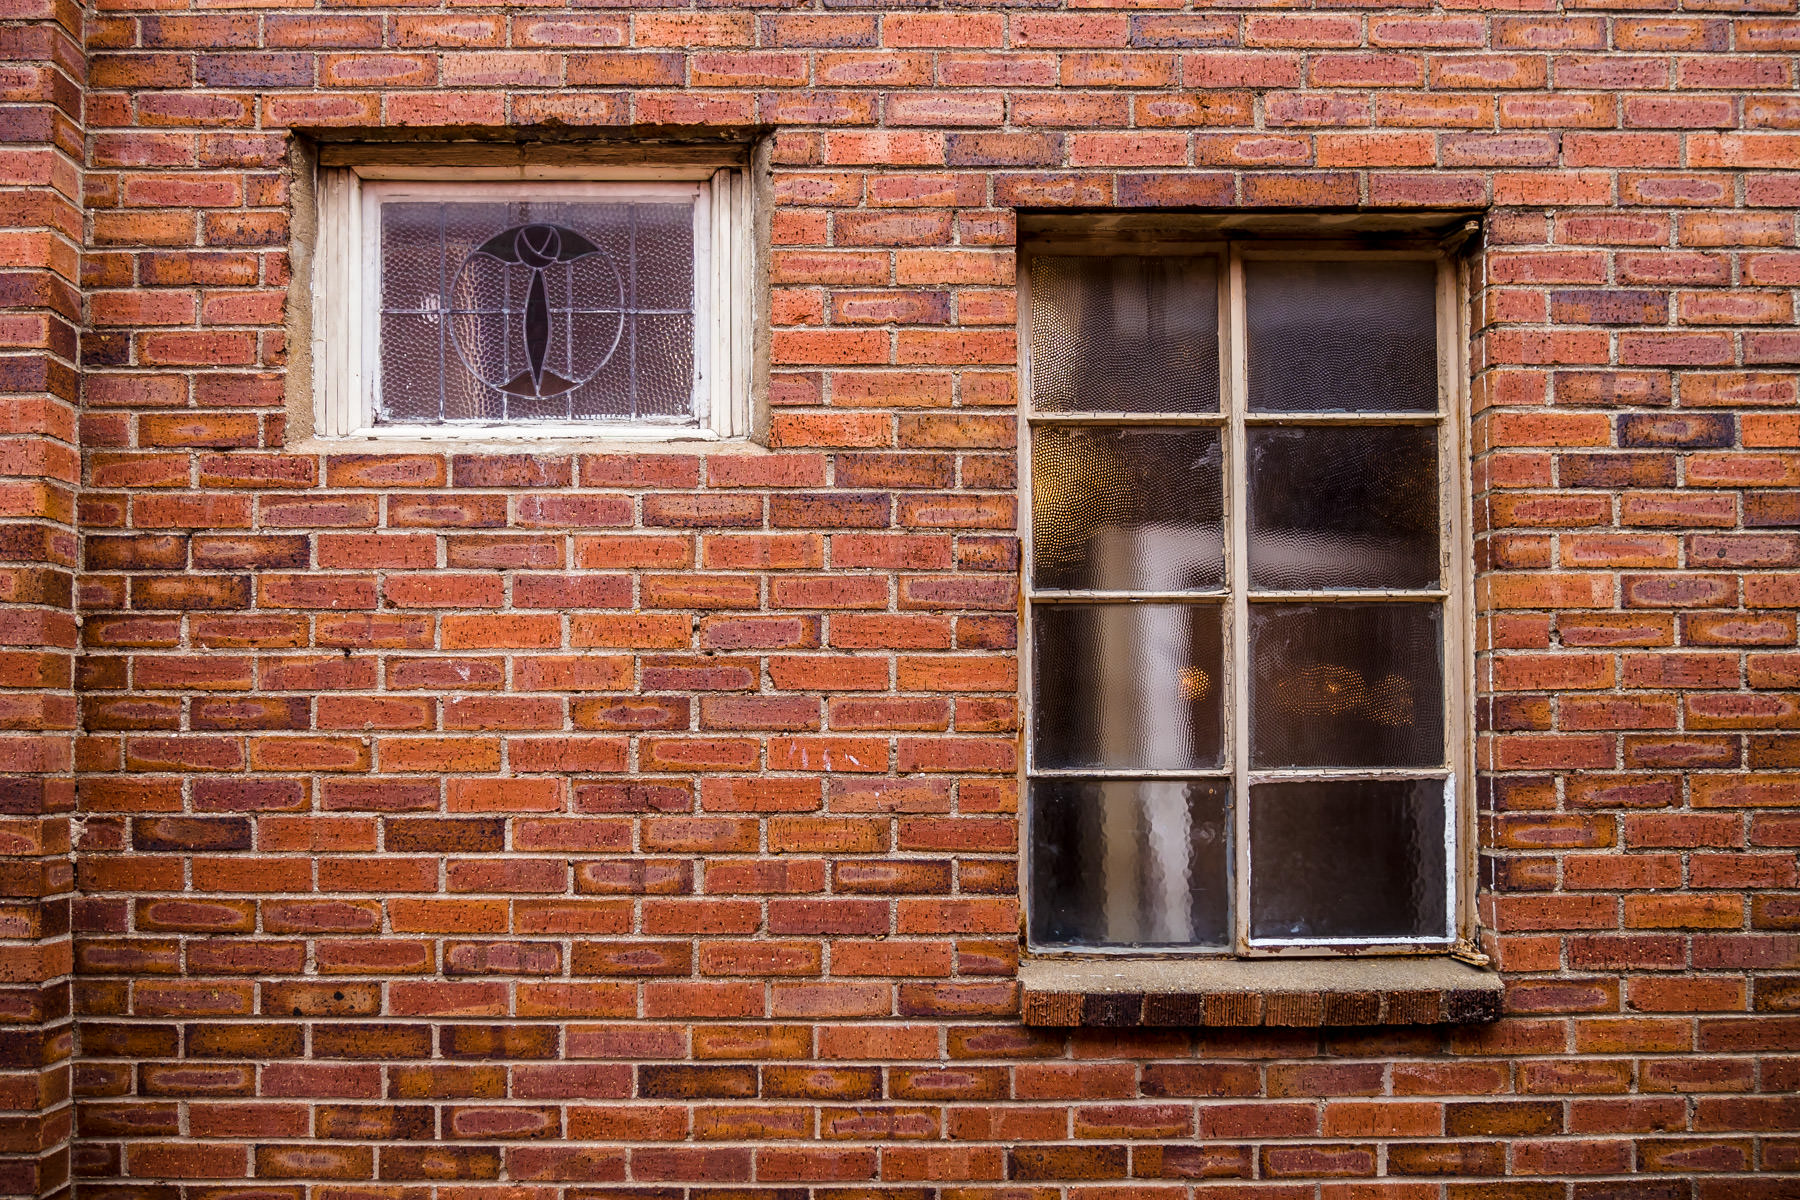 Two different sized windows on the exterior of an old building in Downtown Grapevine, Texas.